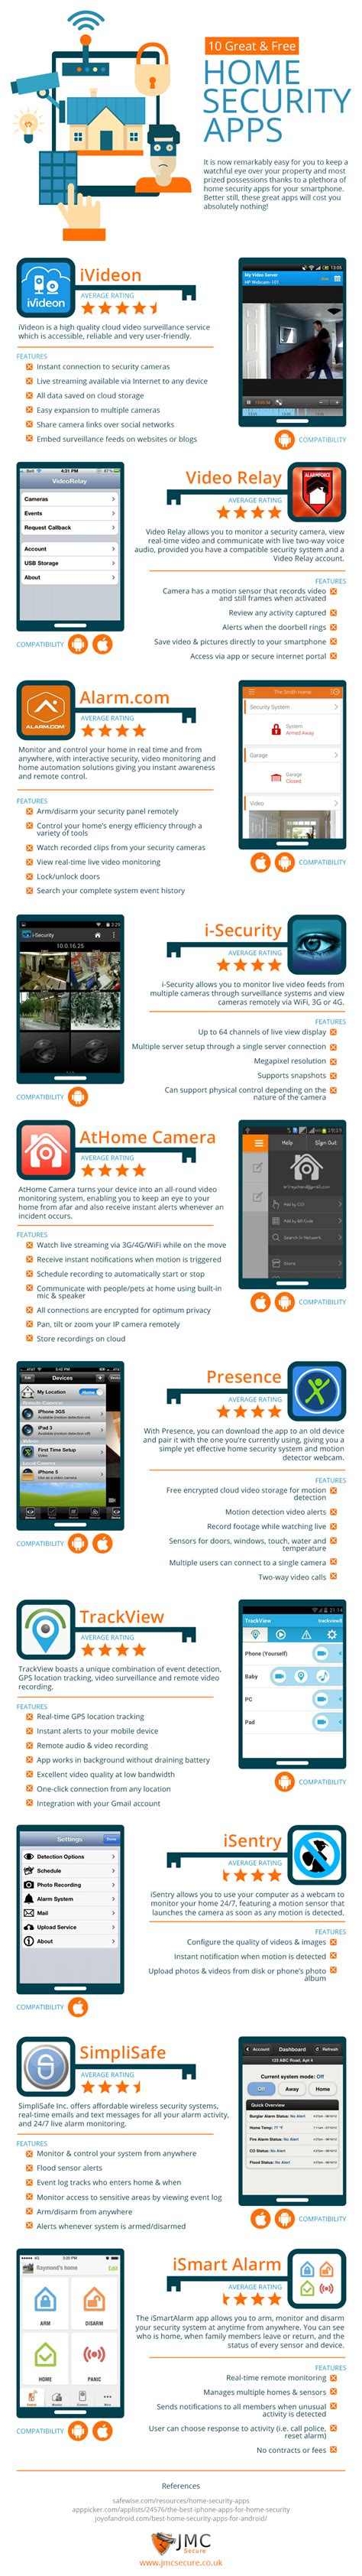 10 great free home security apps infographic biz gazette